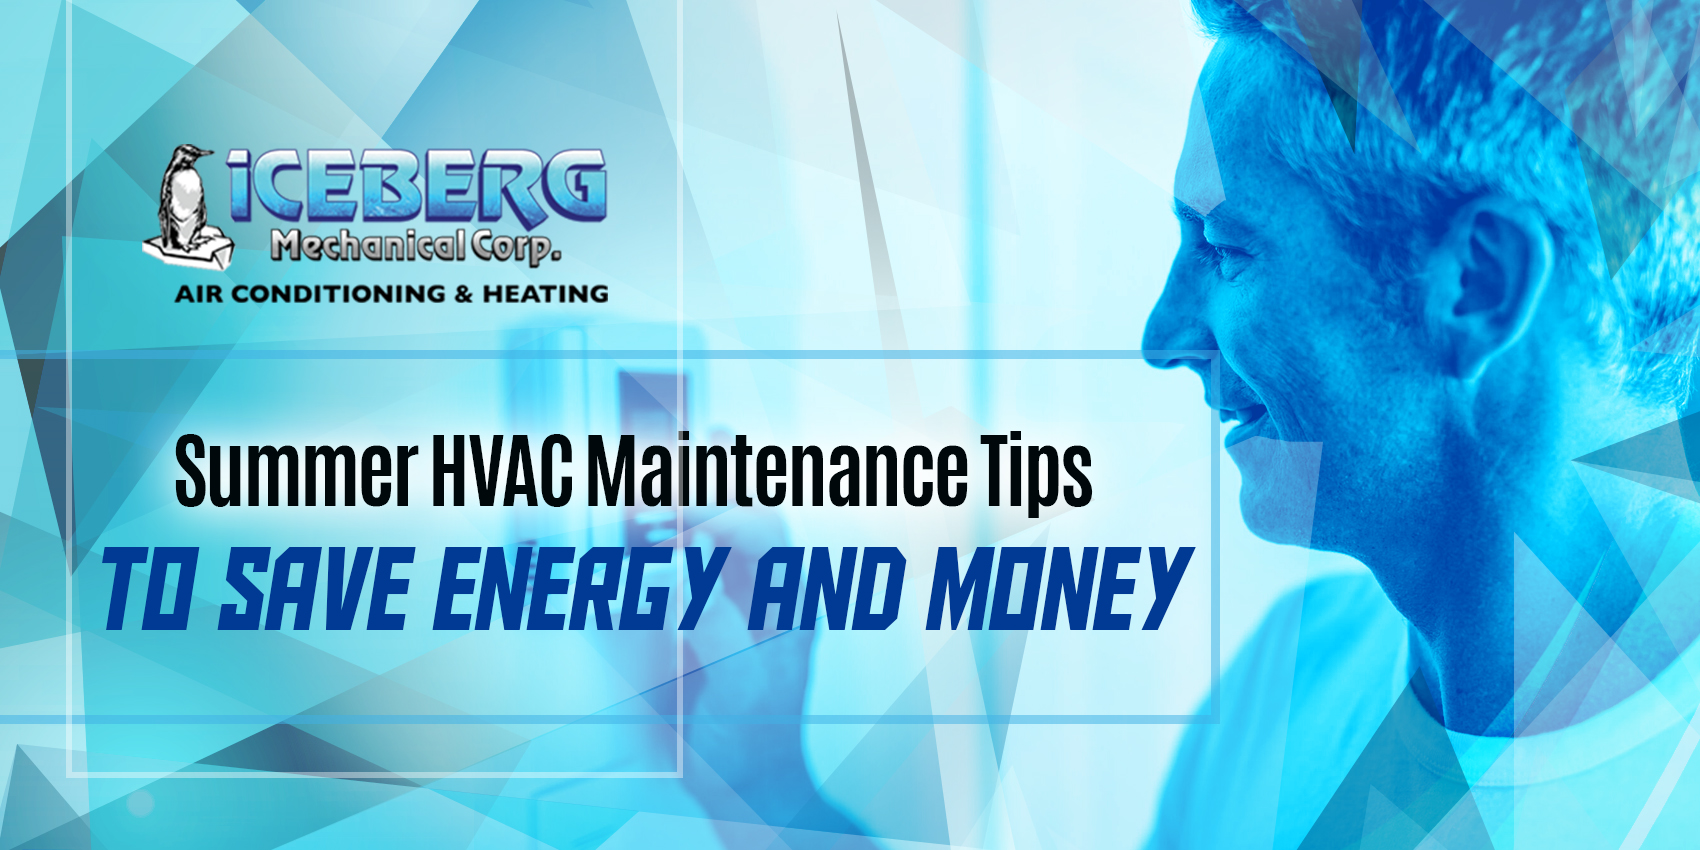 Summer HVAC Maintenance Tips to Save Energy and Money